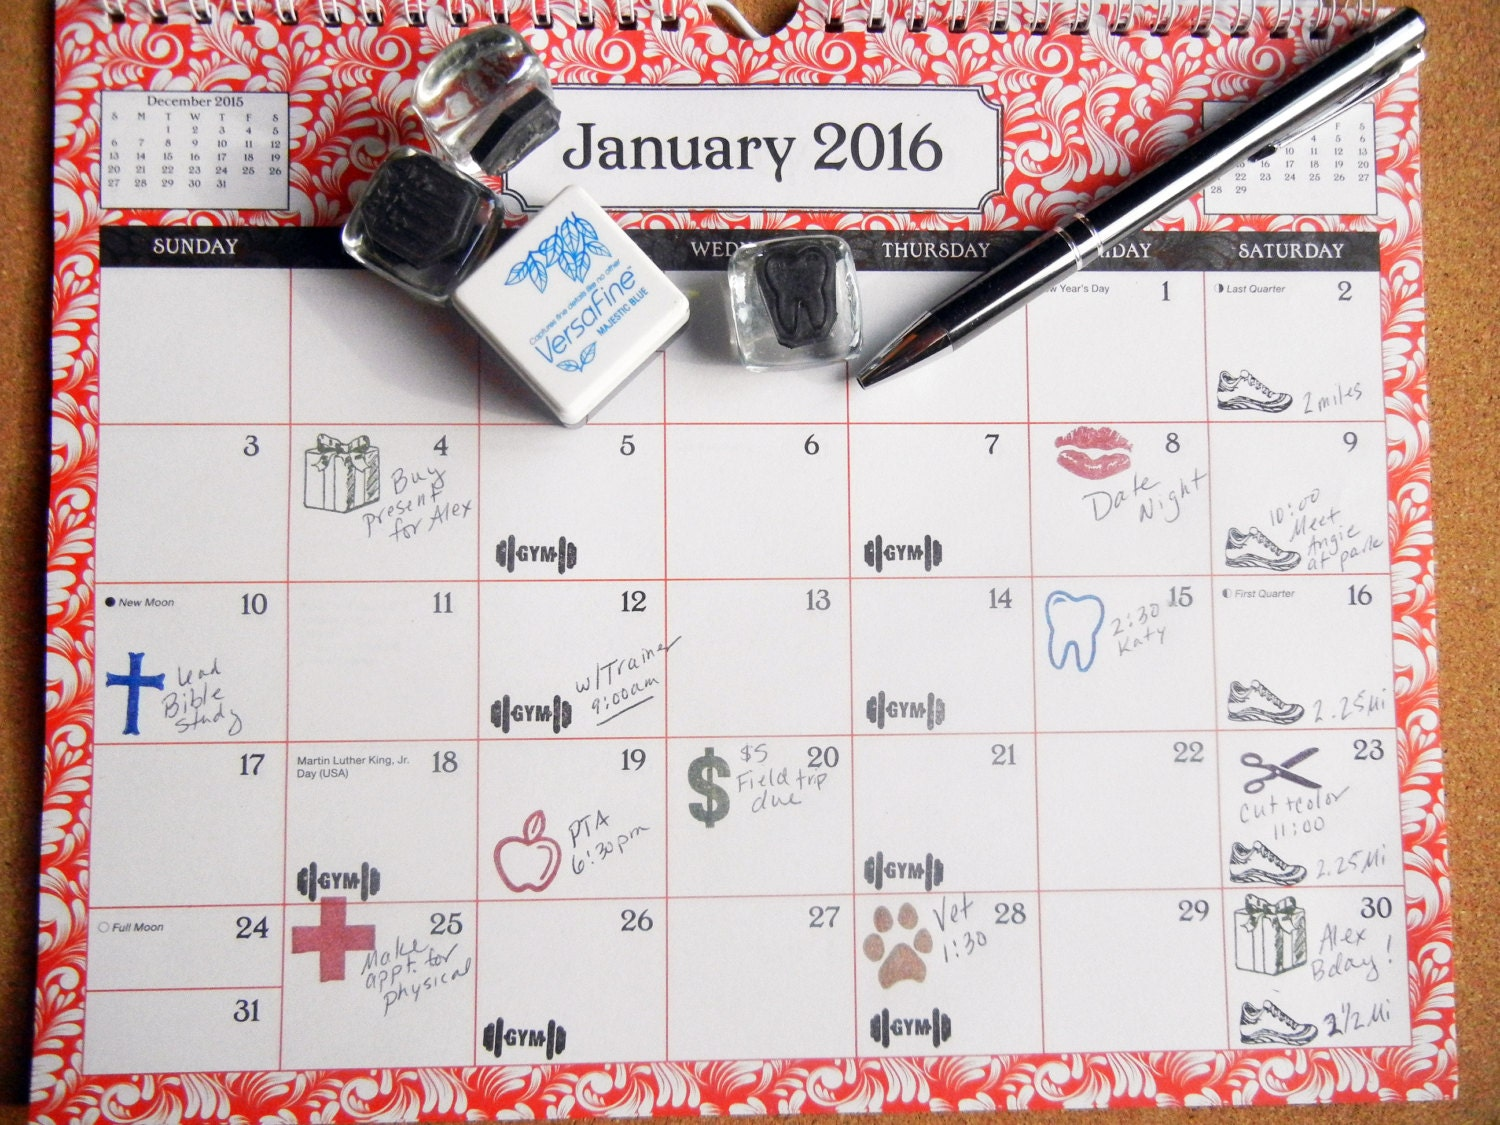 Calendar Sheet Rubber : Planner calendar appointment rubber stamps buy free